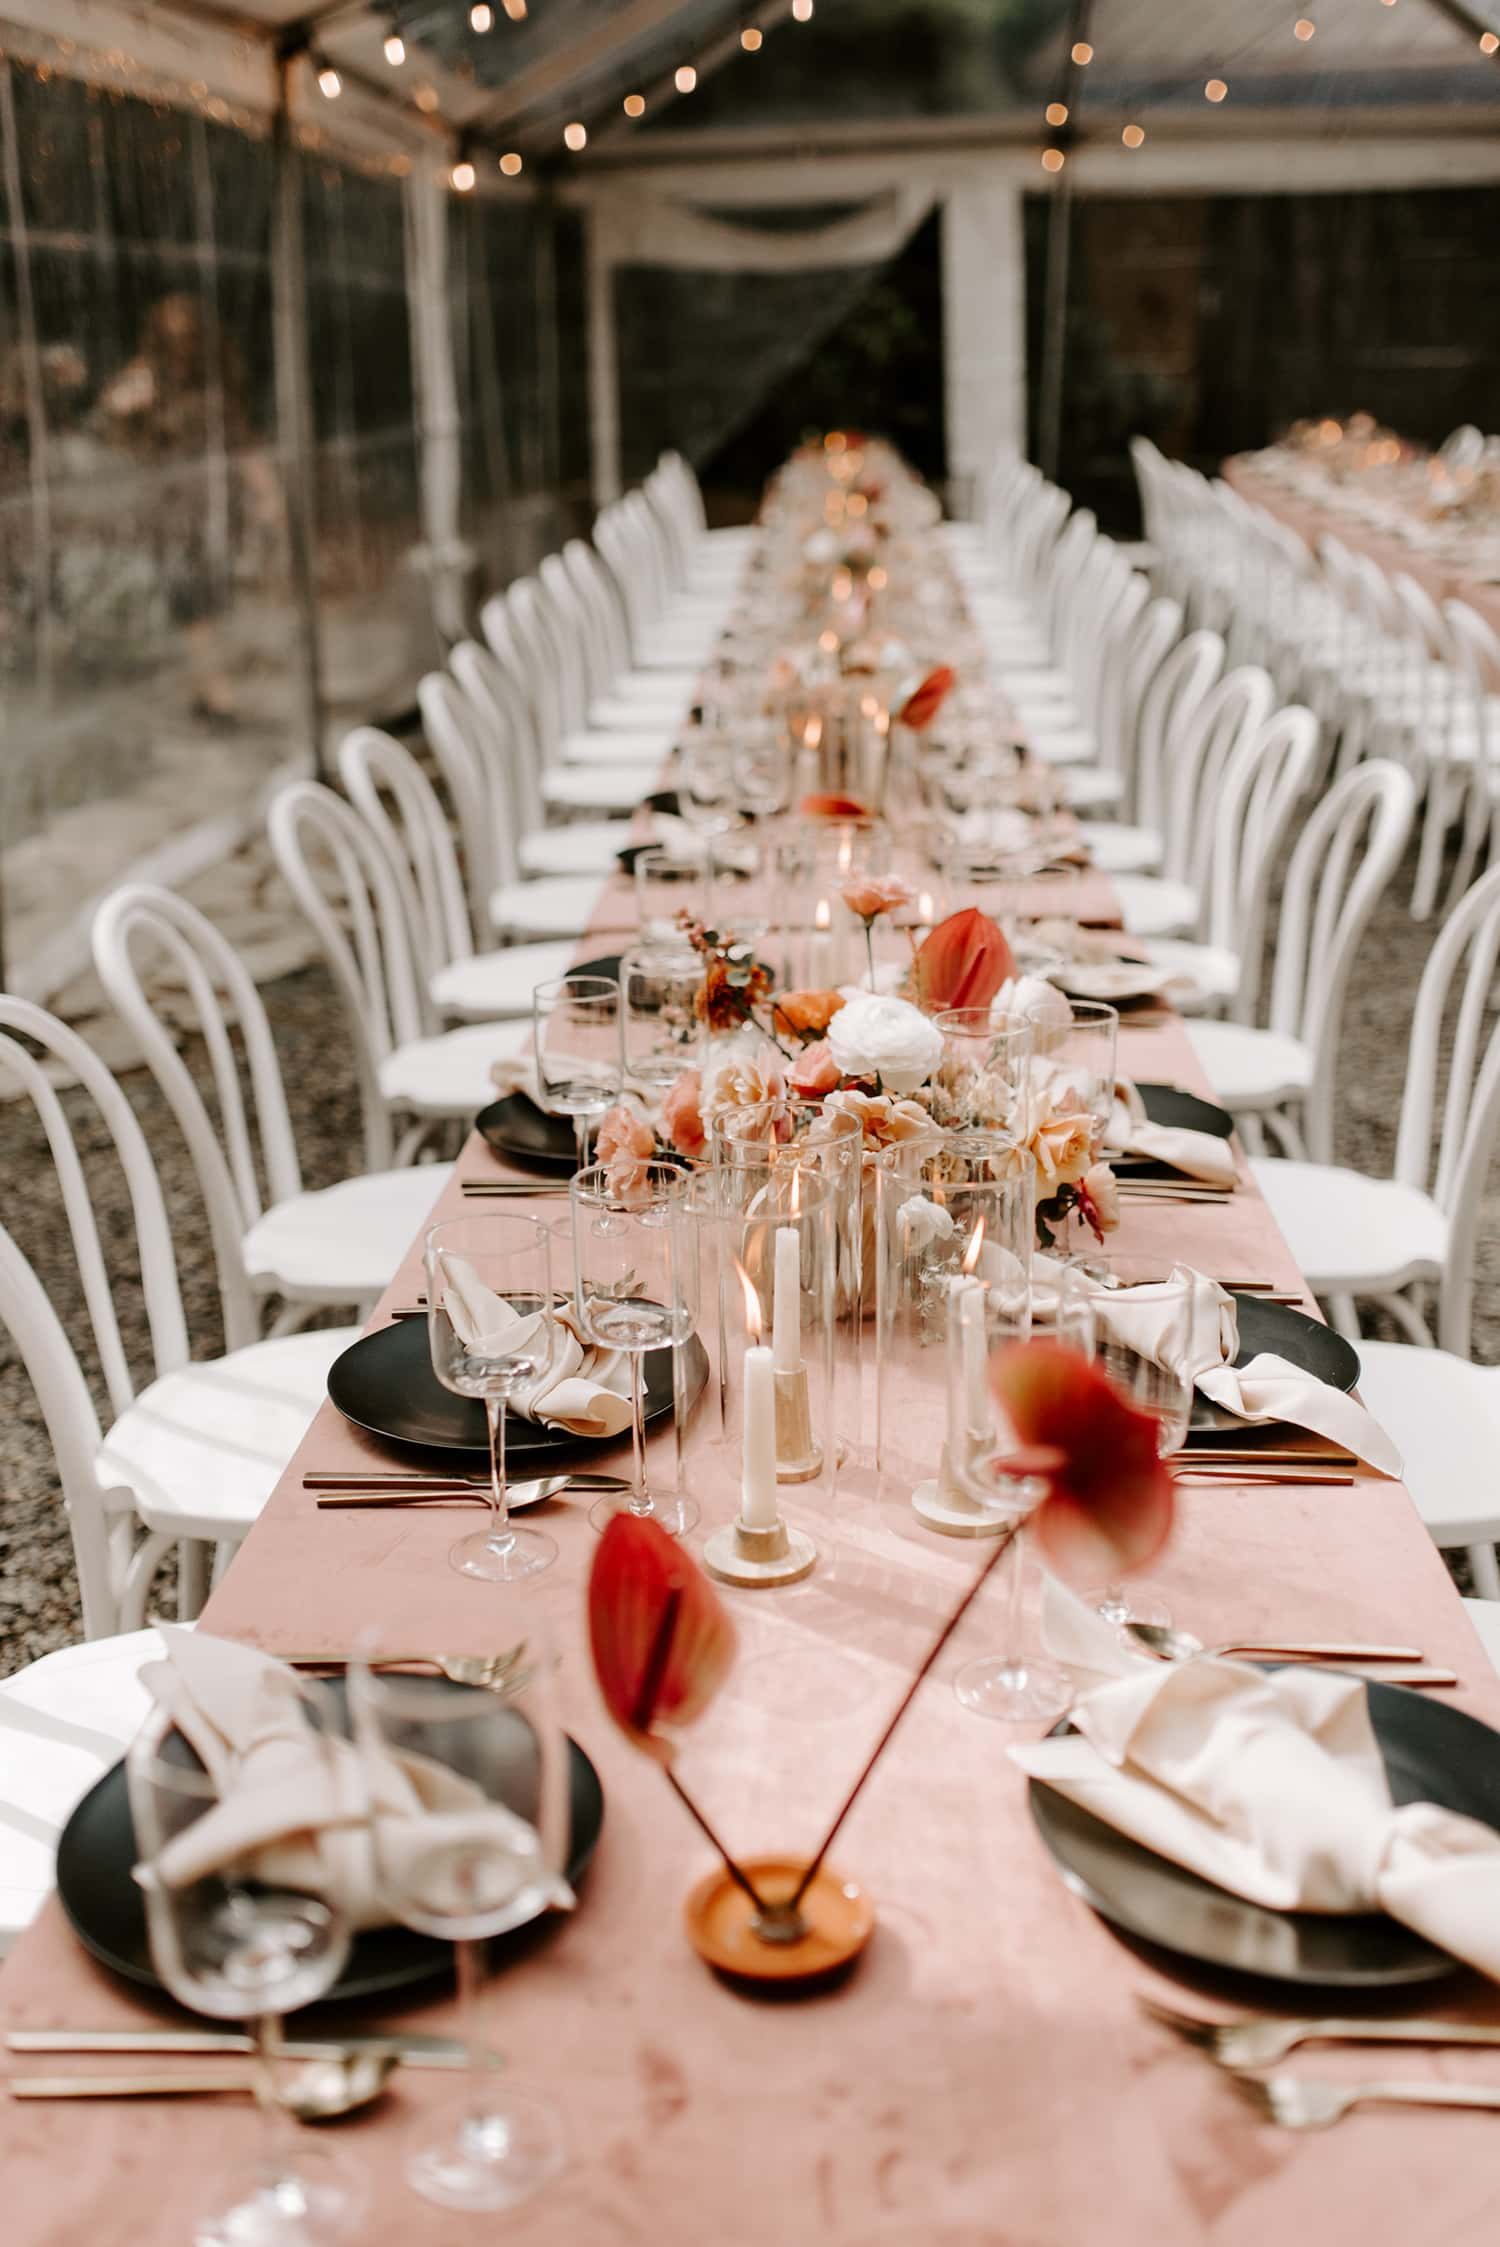 Copy of Floral on head table in wooded wedding